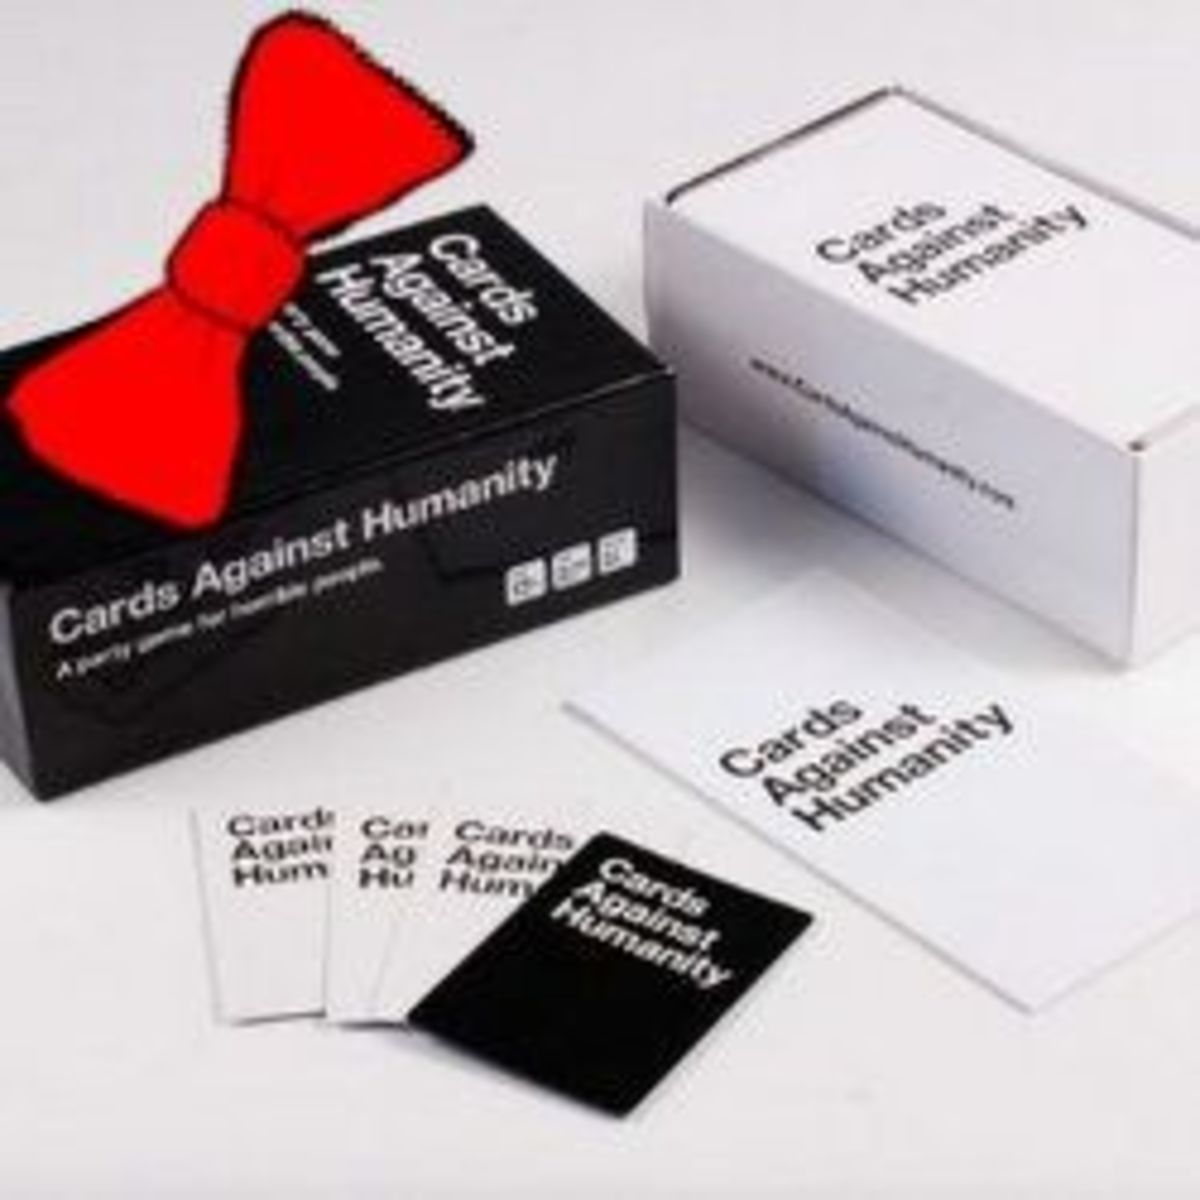 cards-against-humanity-and-expansion-pack